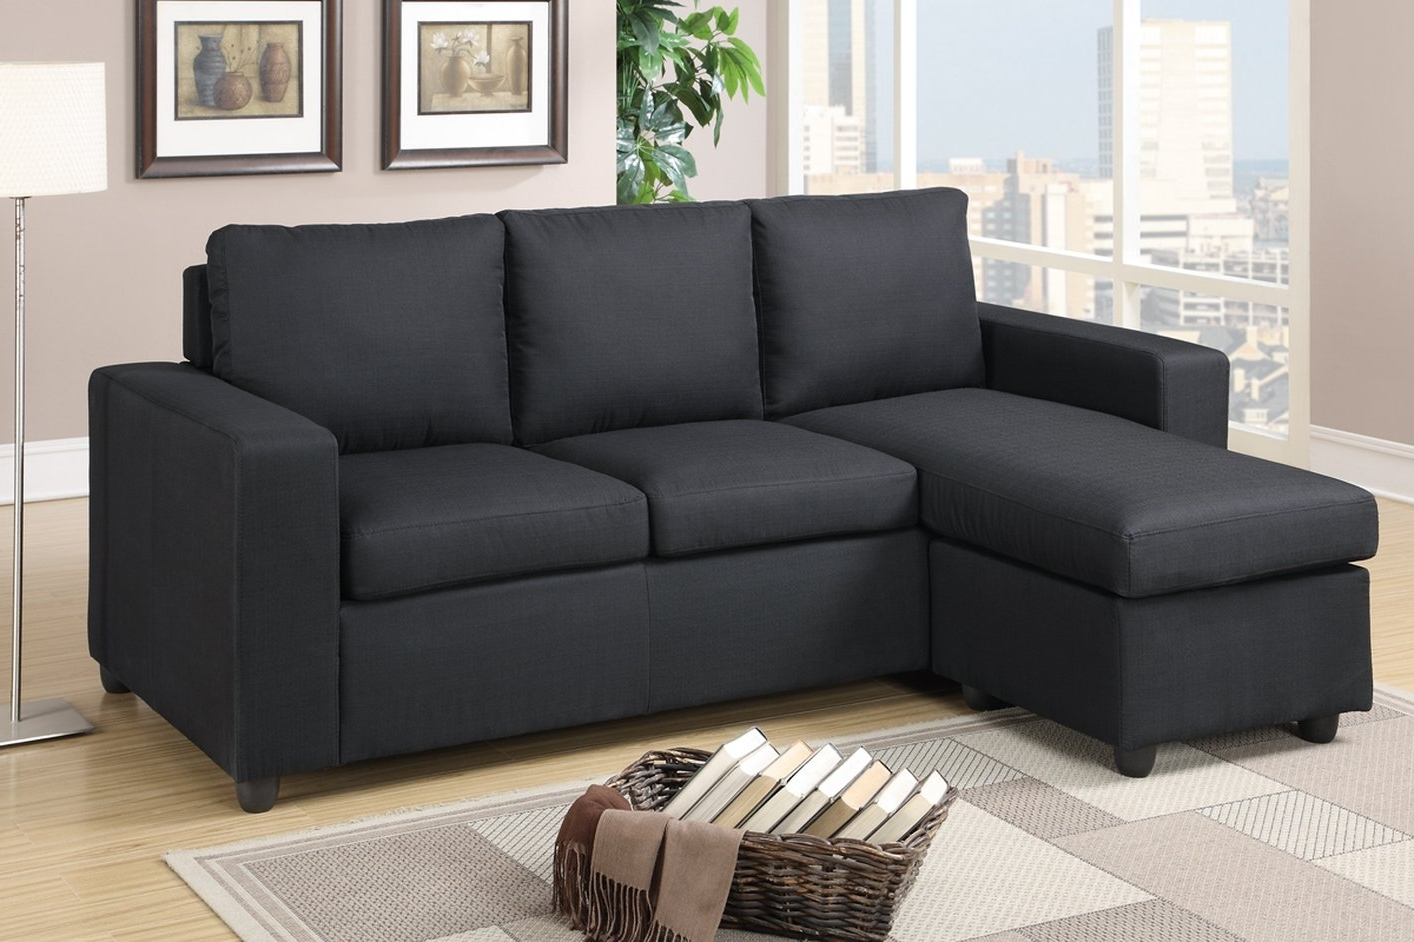 Black Sectional Sofas In Well Known Black Leather Reclining Sectional — Radionigerialagos (View 5 of 20)